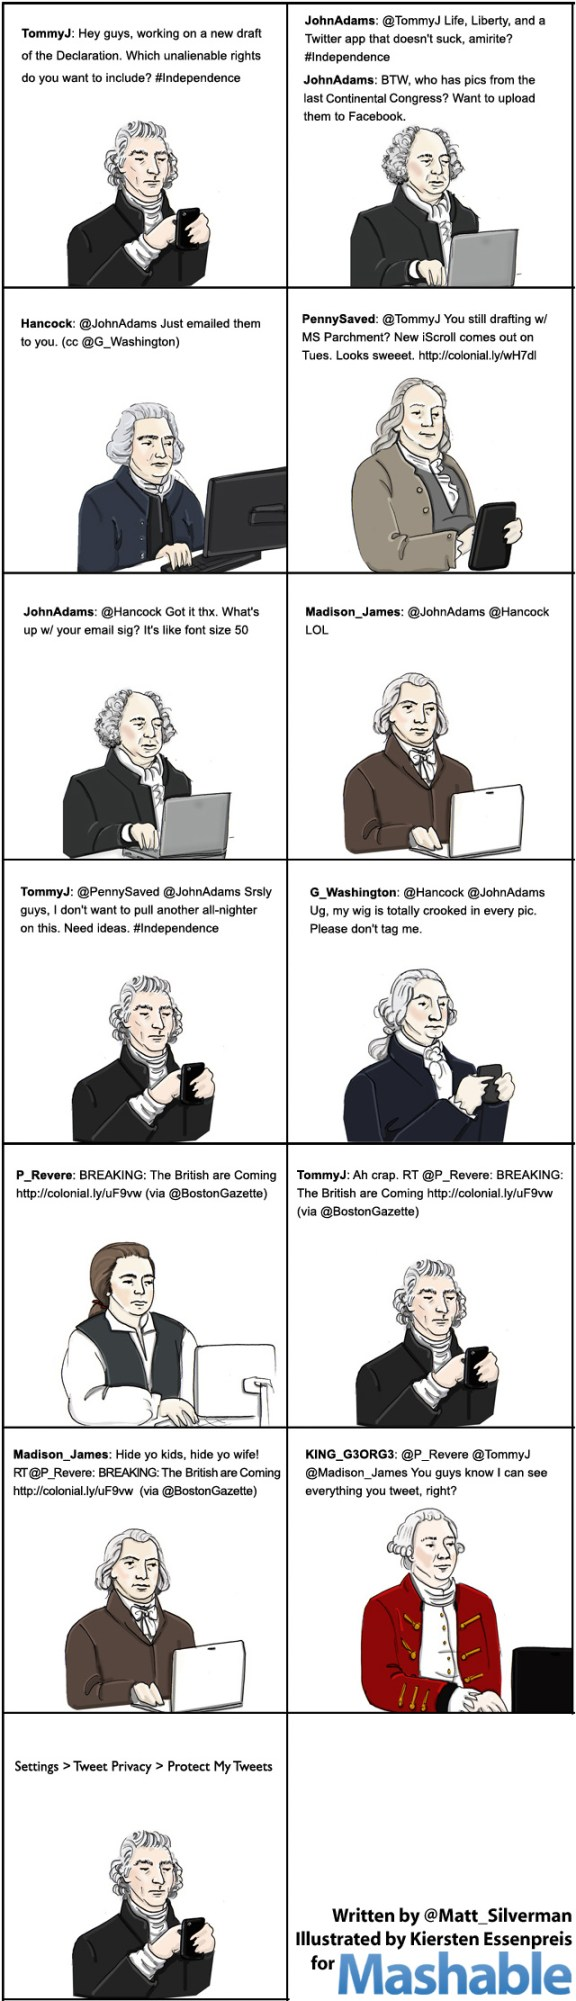 Twitter Comic Founding Fathers